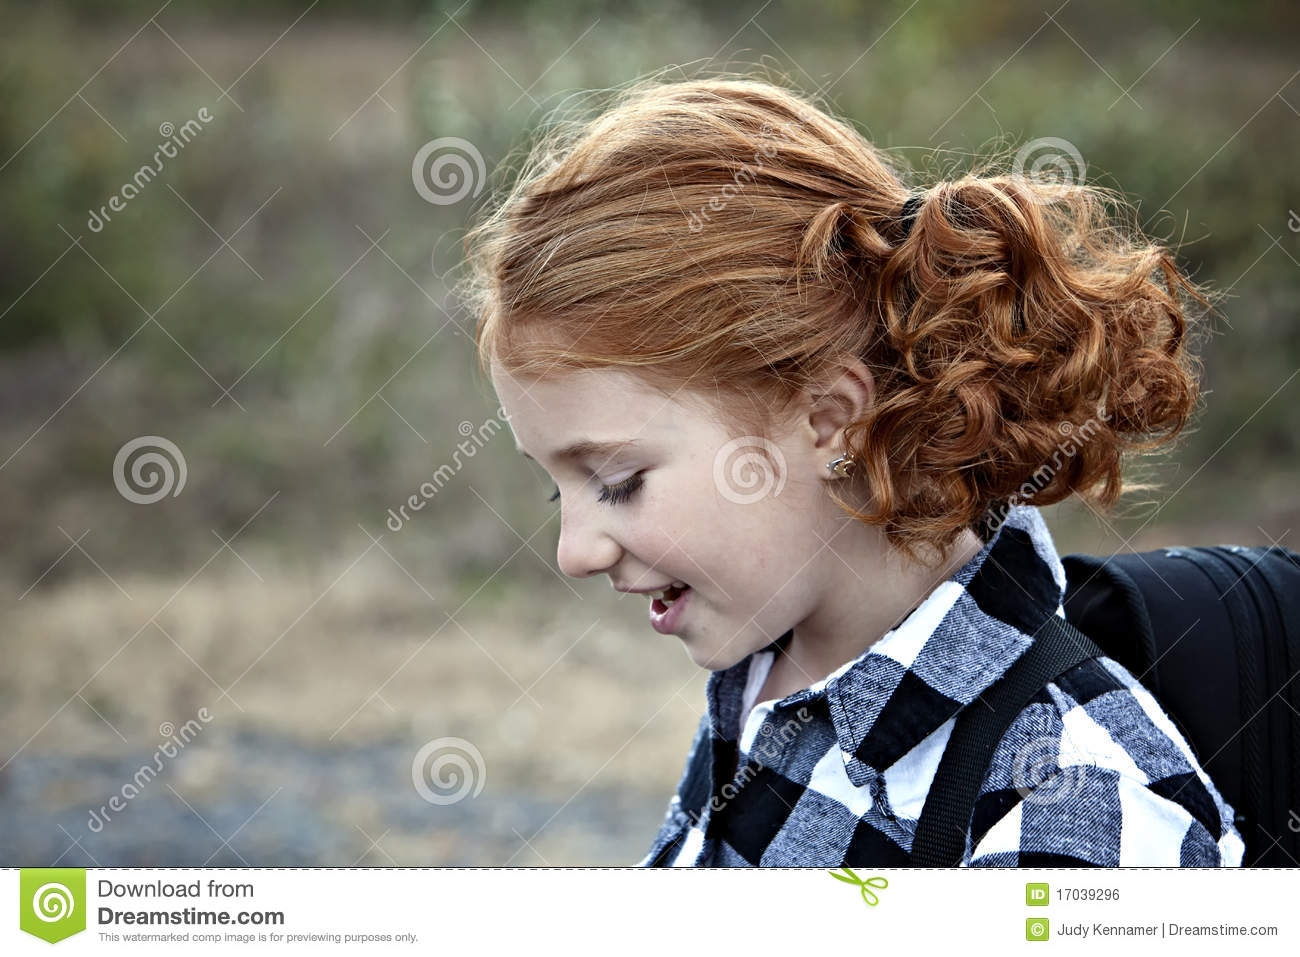 Copycat reccomend Redhead with pigtails girl from